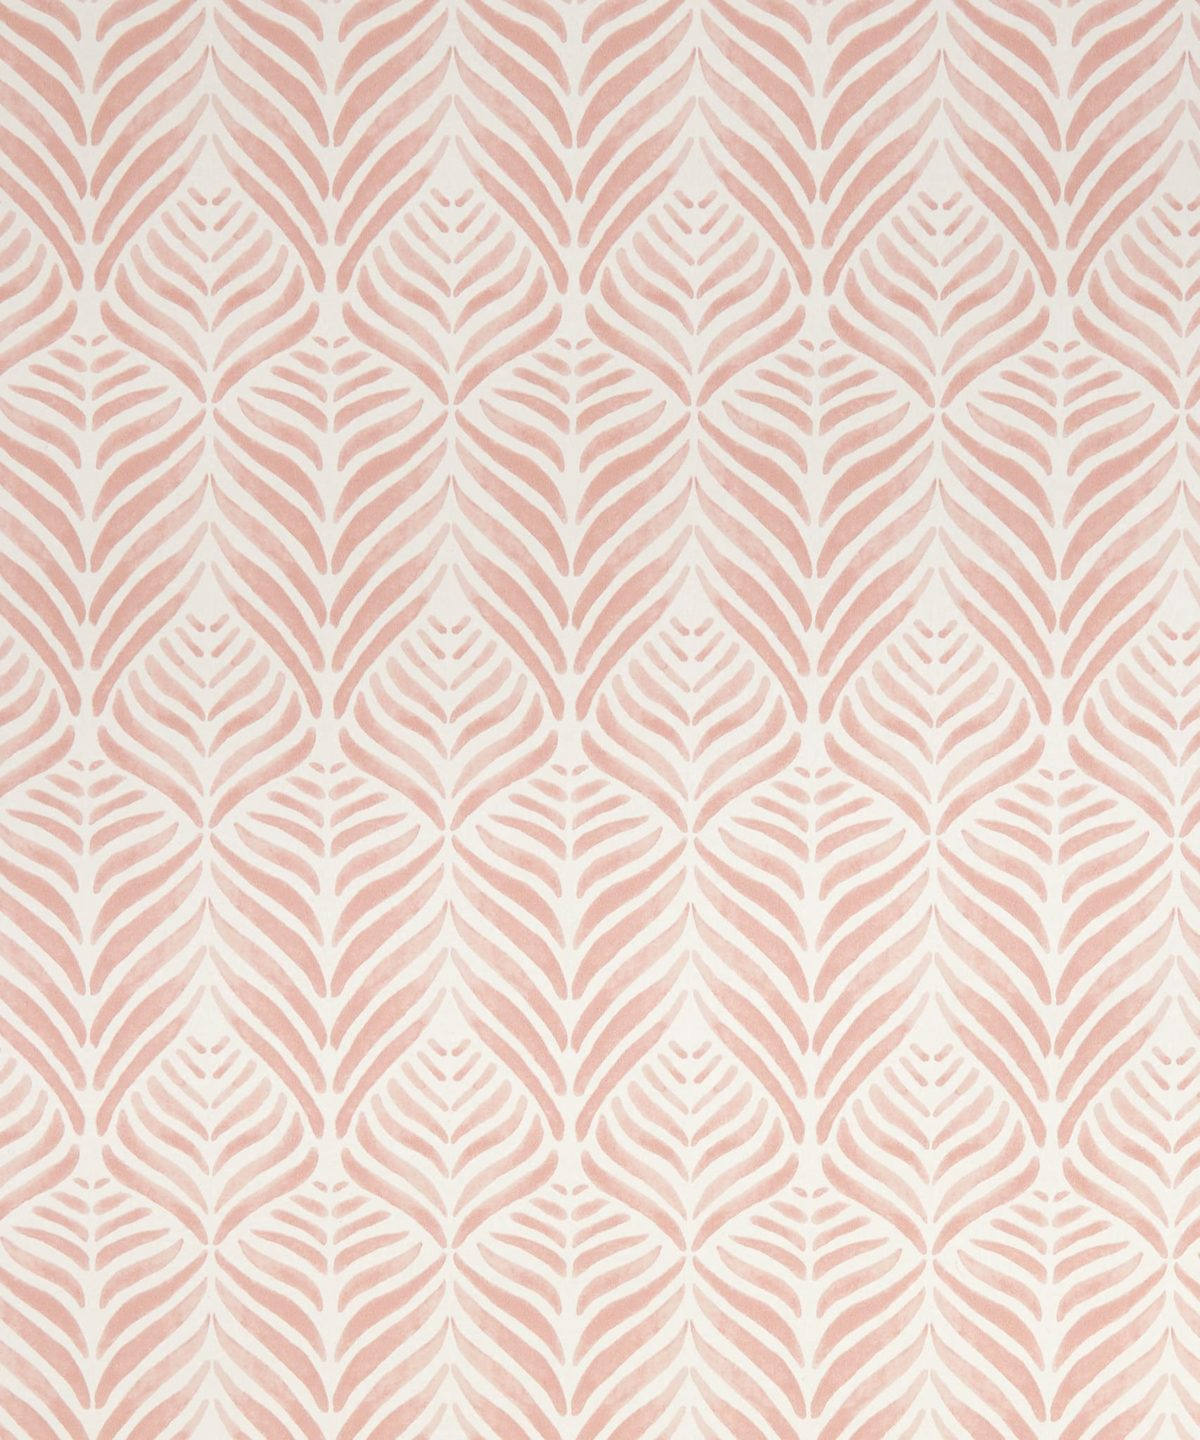 Liberty Print Wallpaper Quill Ointment